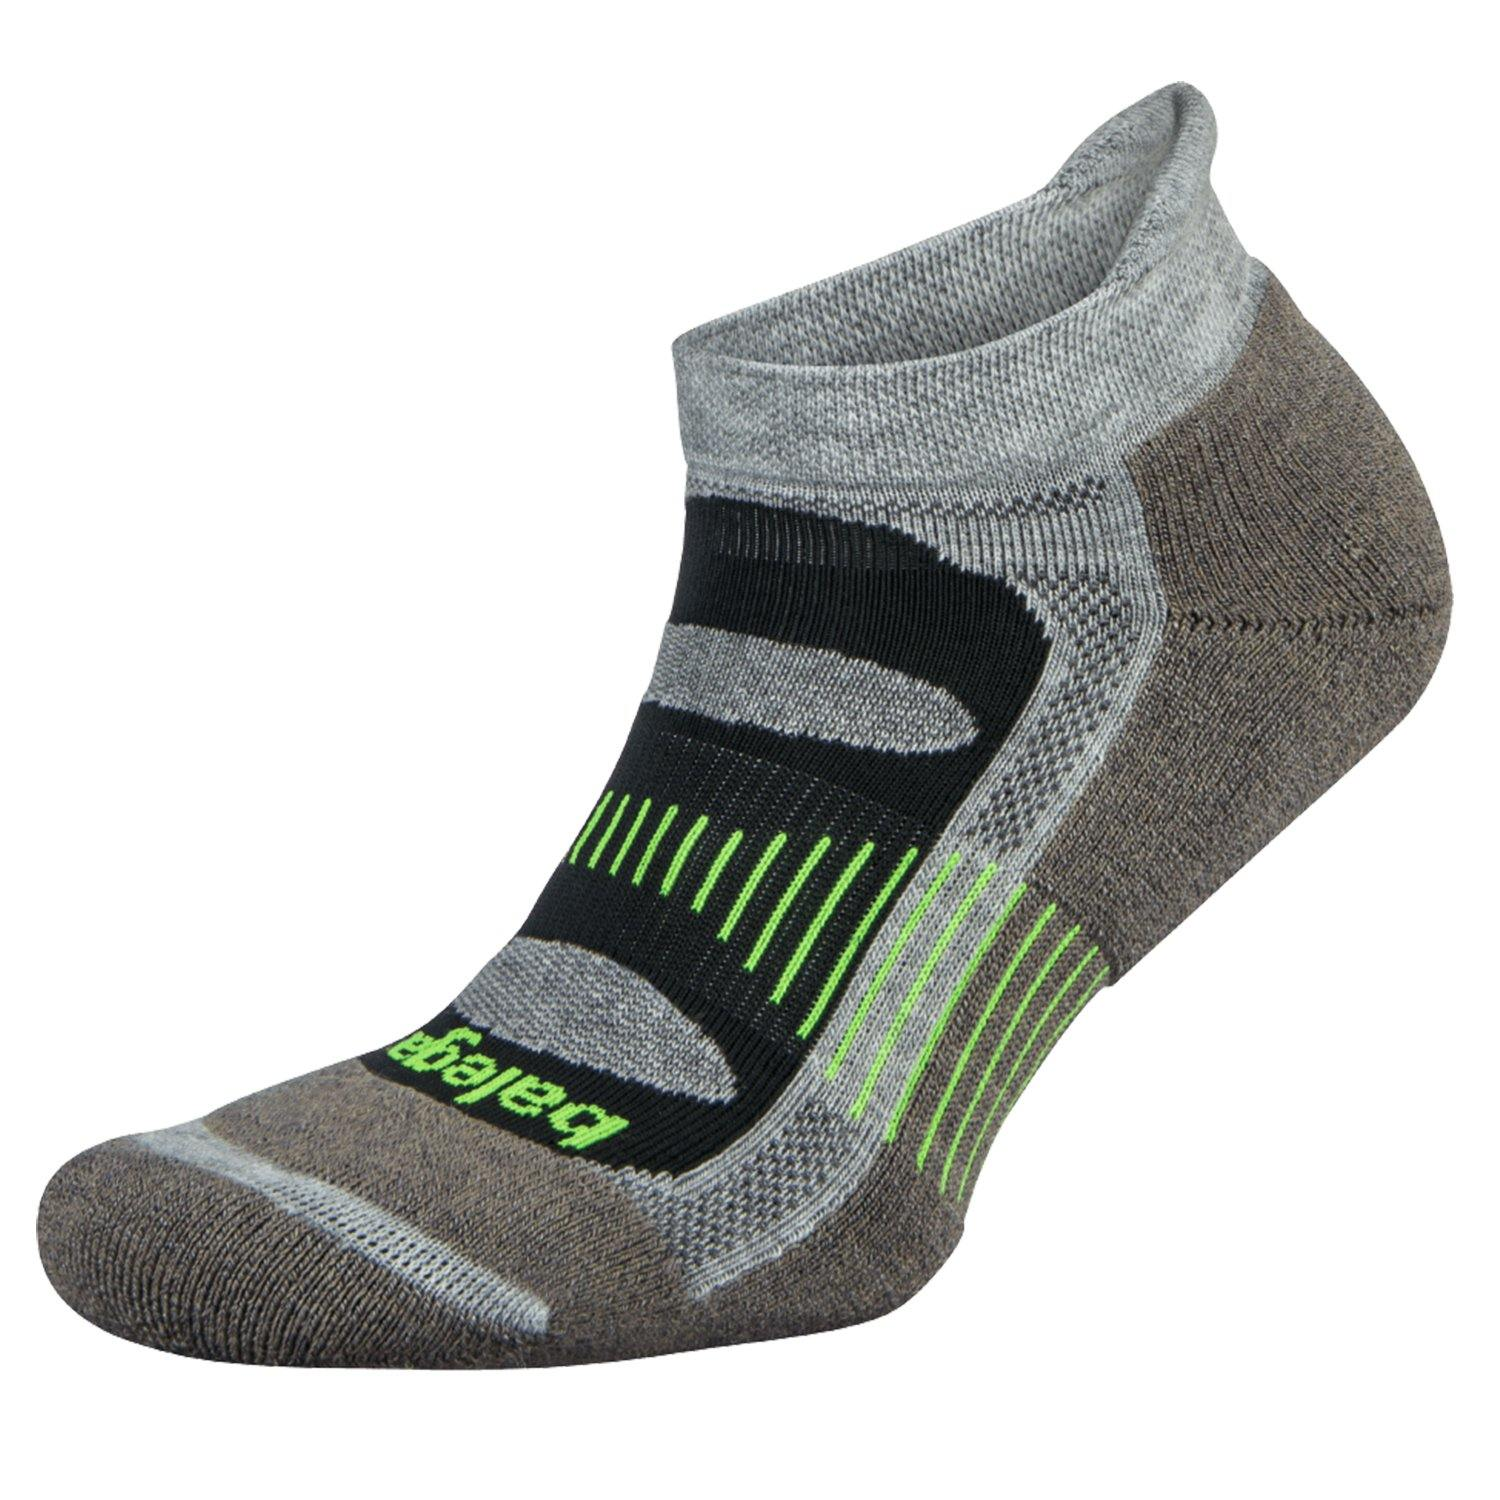 Balega Blister Resist No Show Socks - Mink/Grey